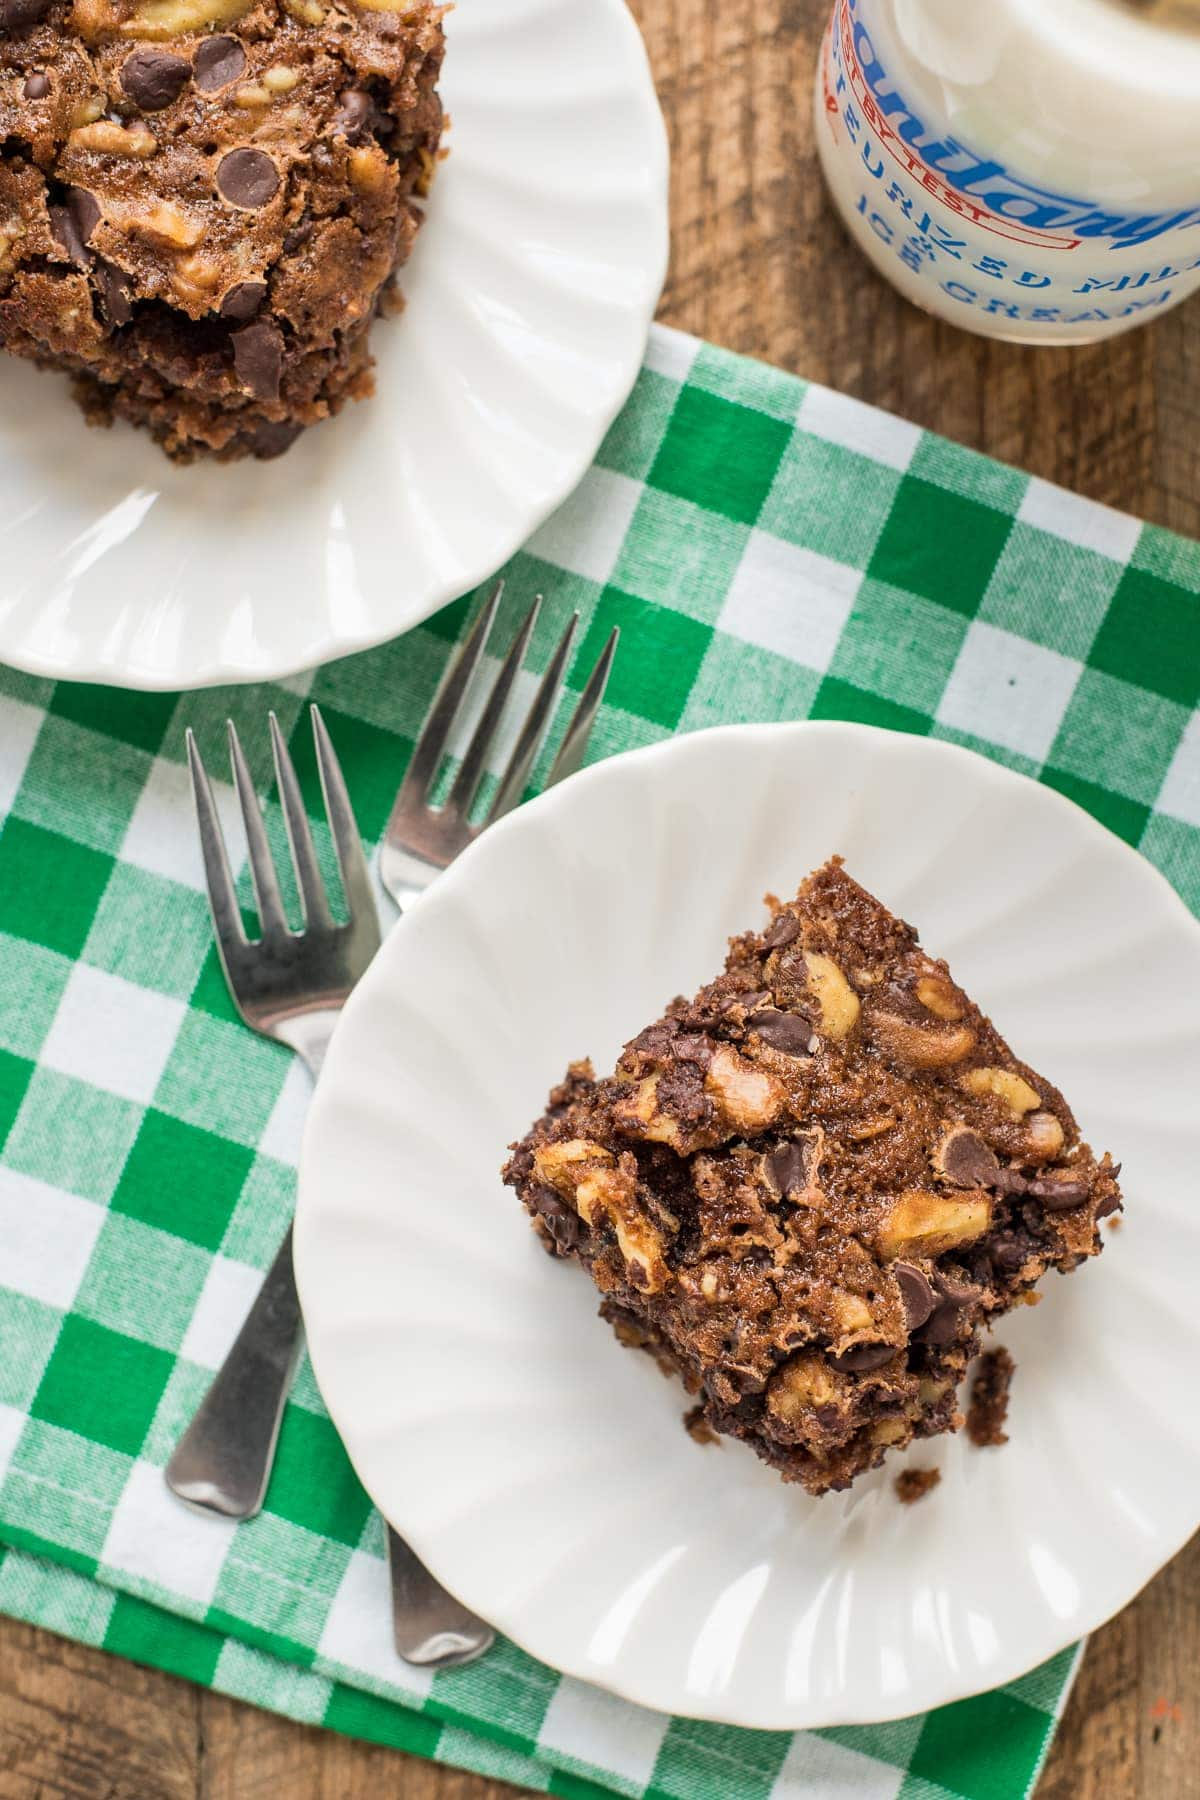 This Oatmeal Chocolate Chip Snack Cake has a hearty, chewy texture and is perfect as an after school snack!